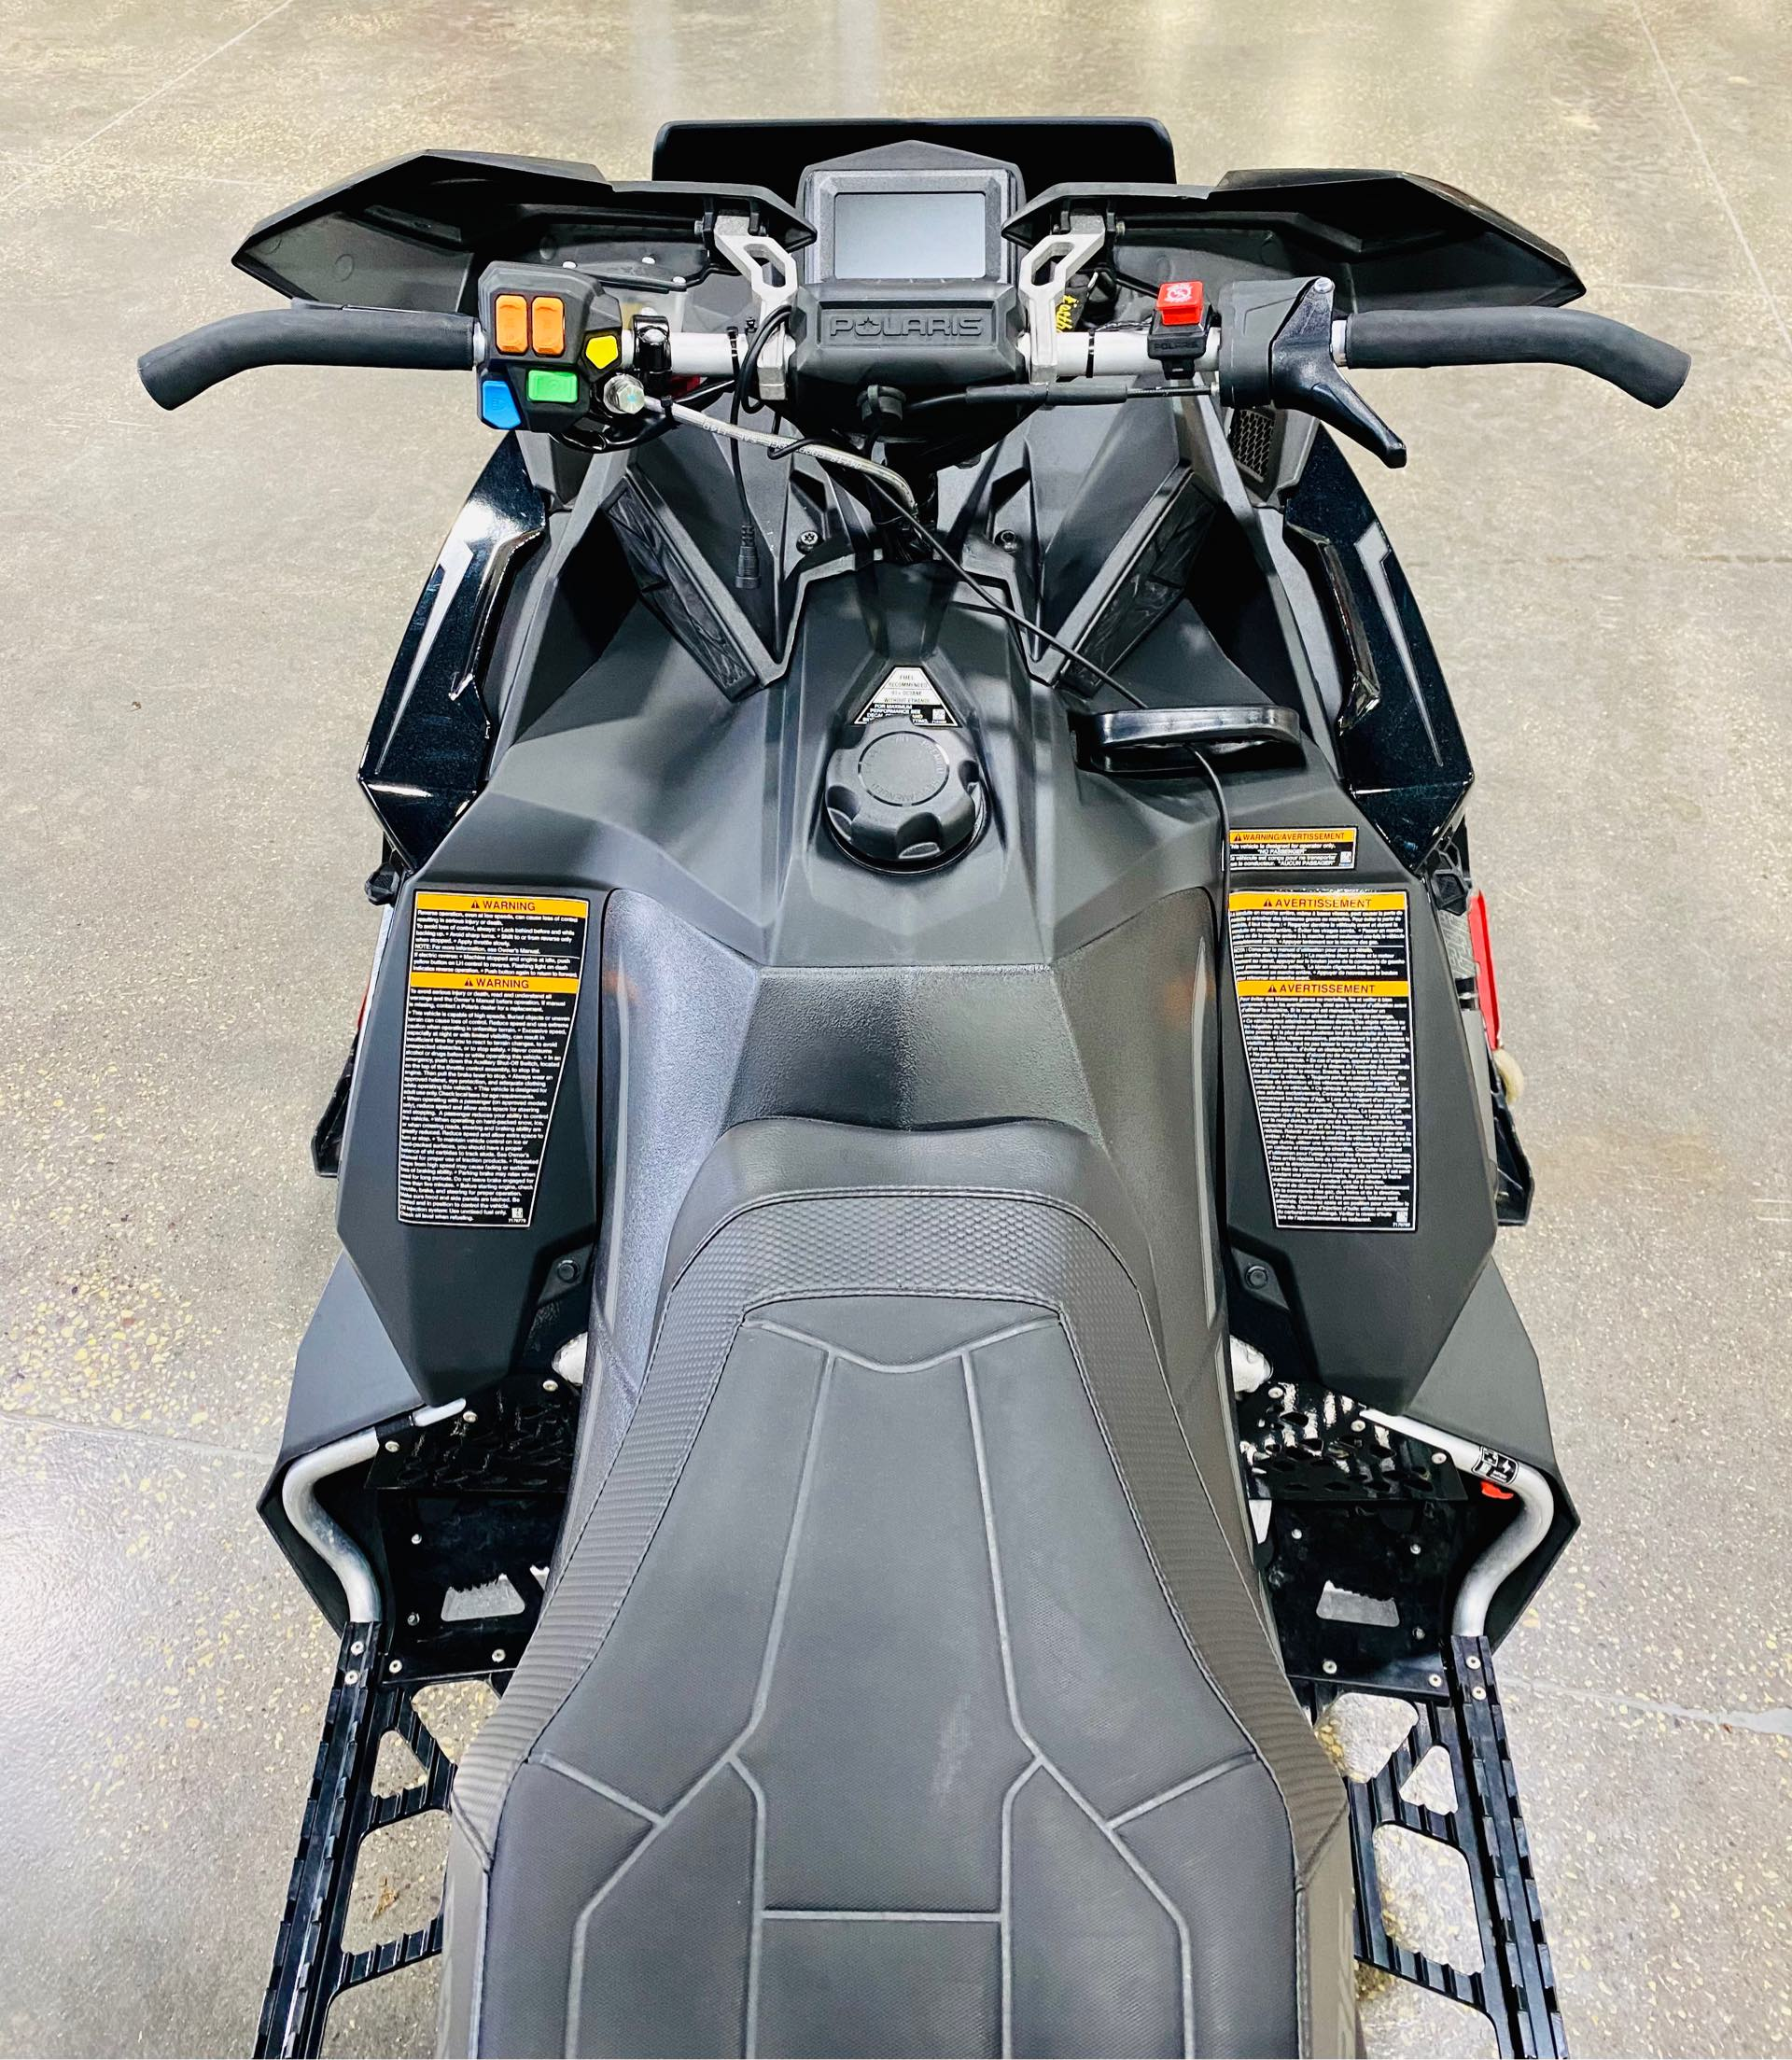 2020 Polaris INDY XC 137 800 at Rod's Ride On Powersports